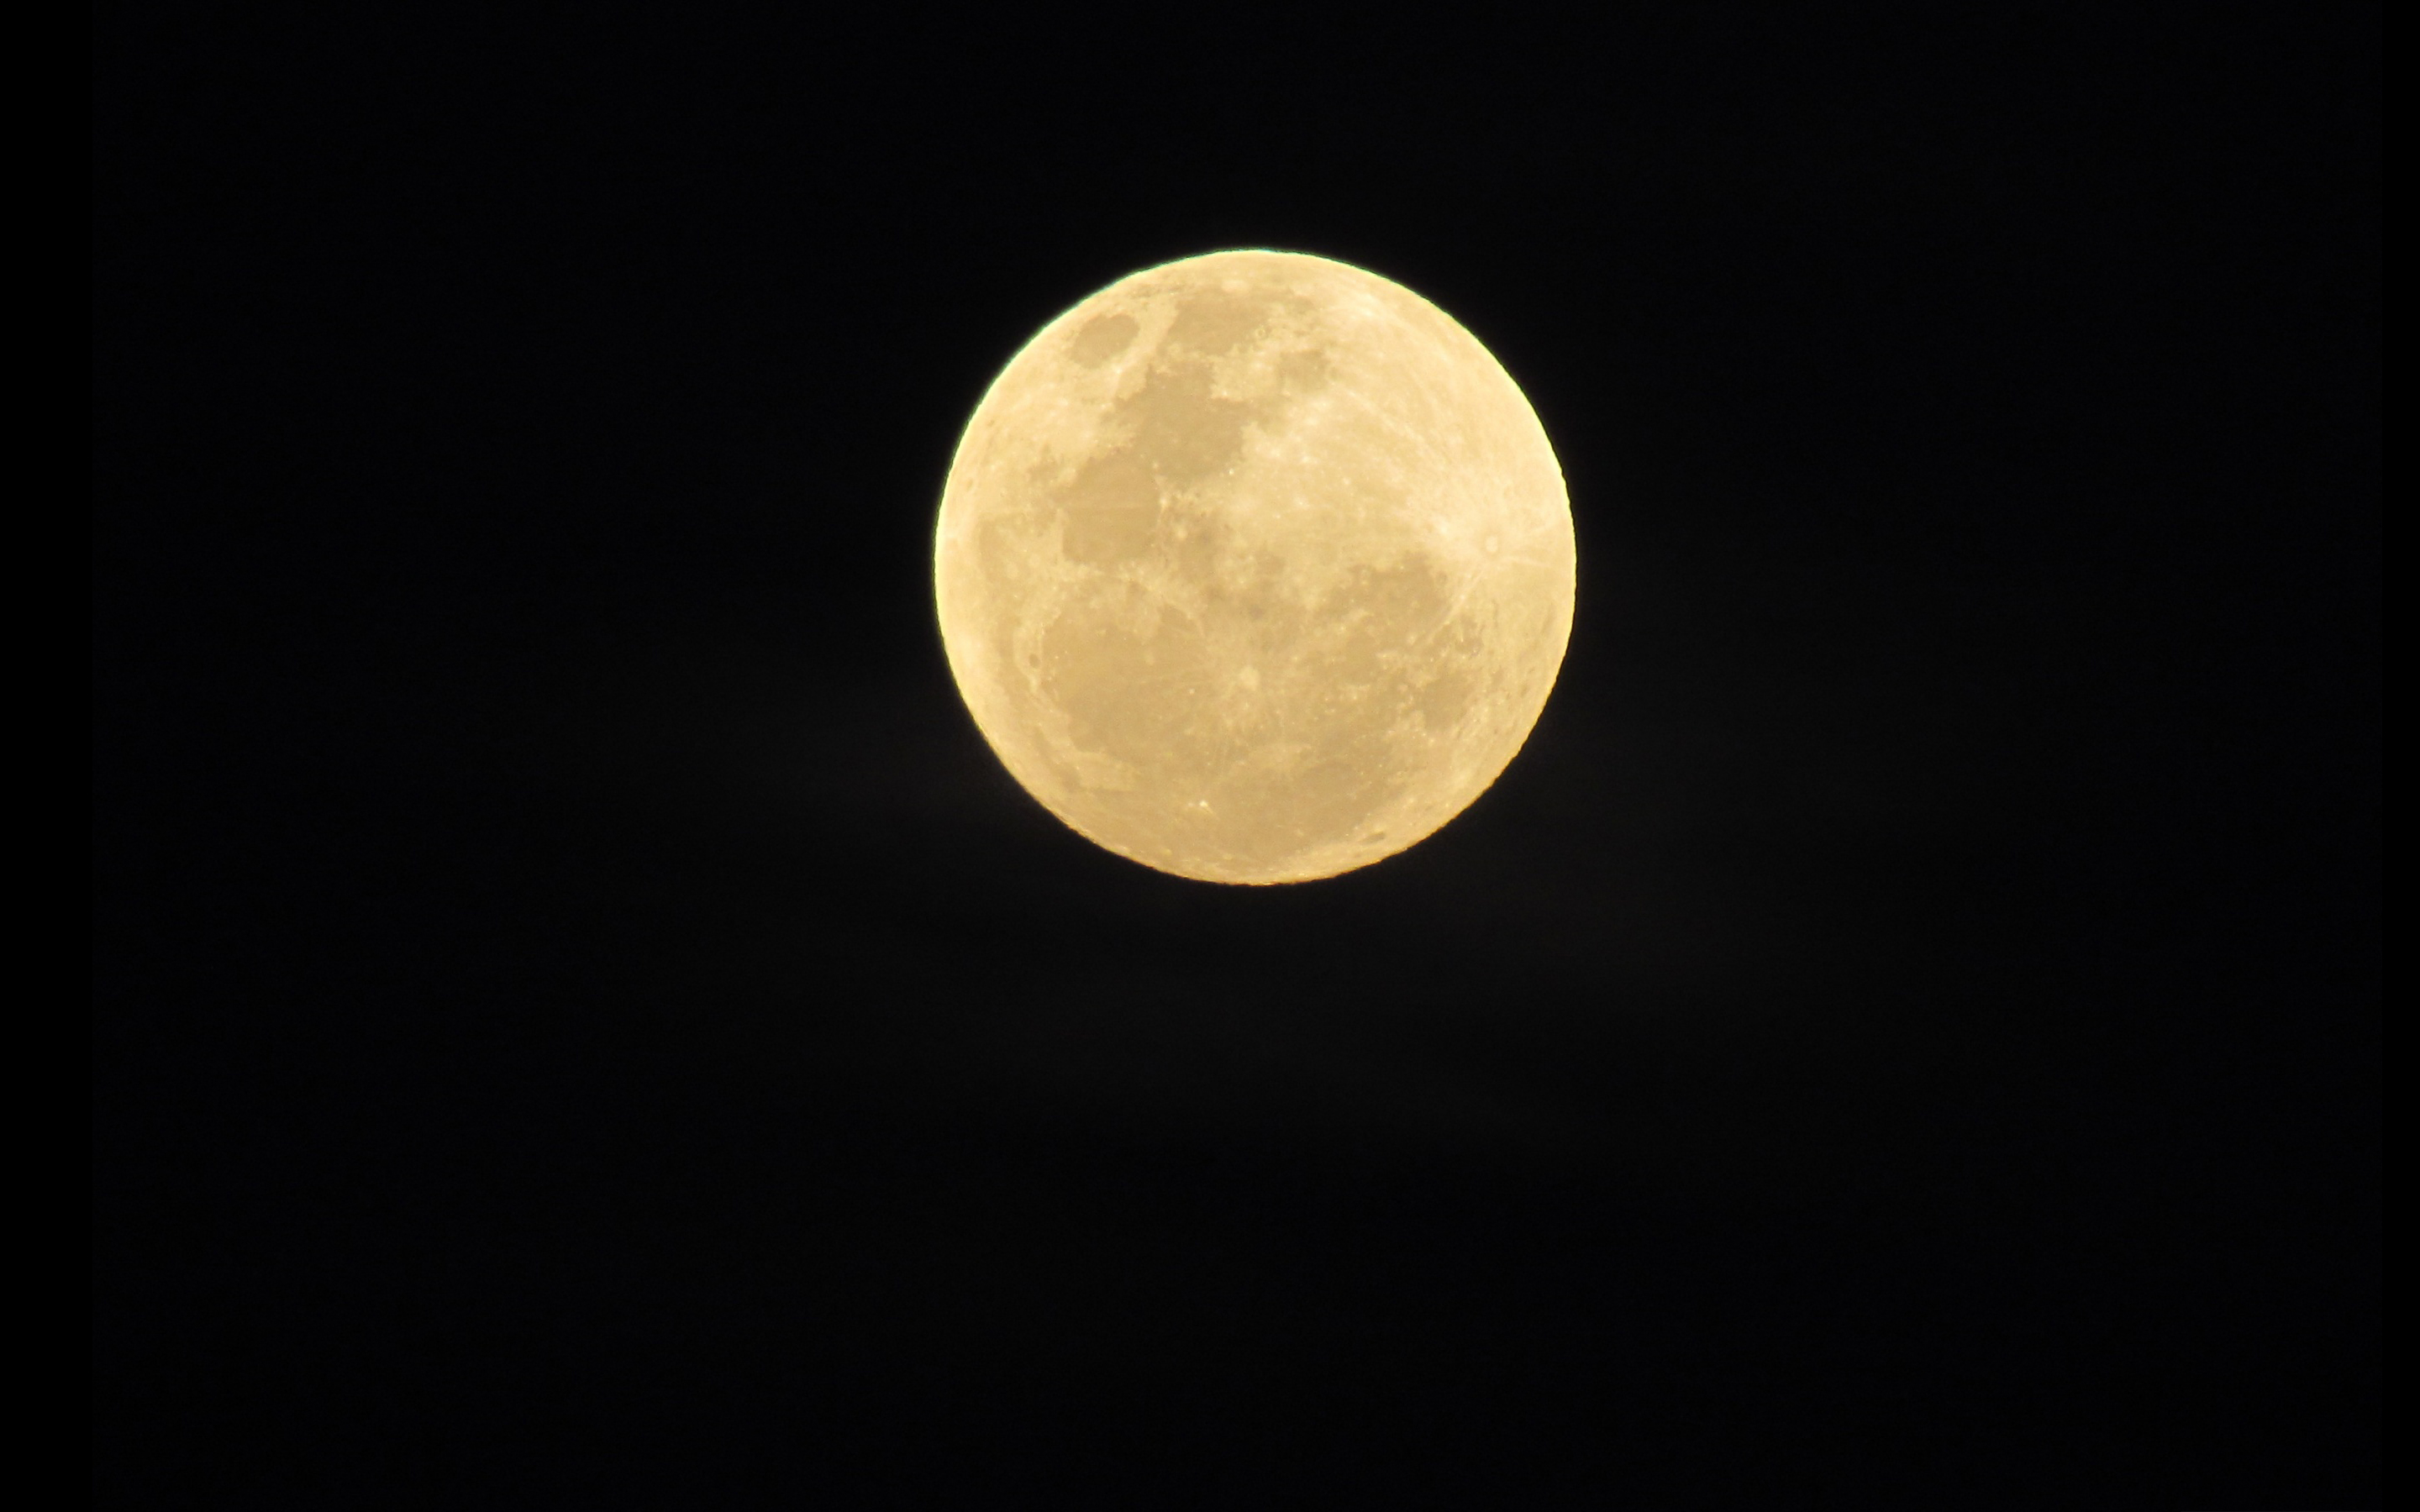 Full moon hd 1